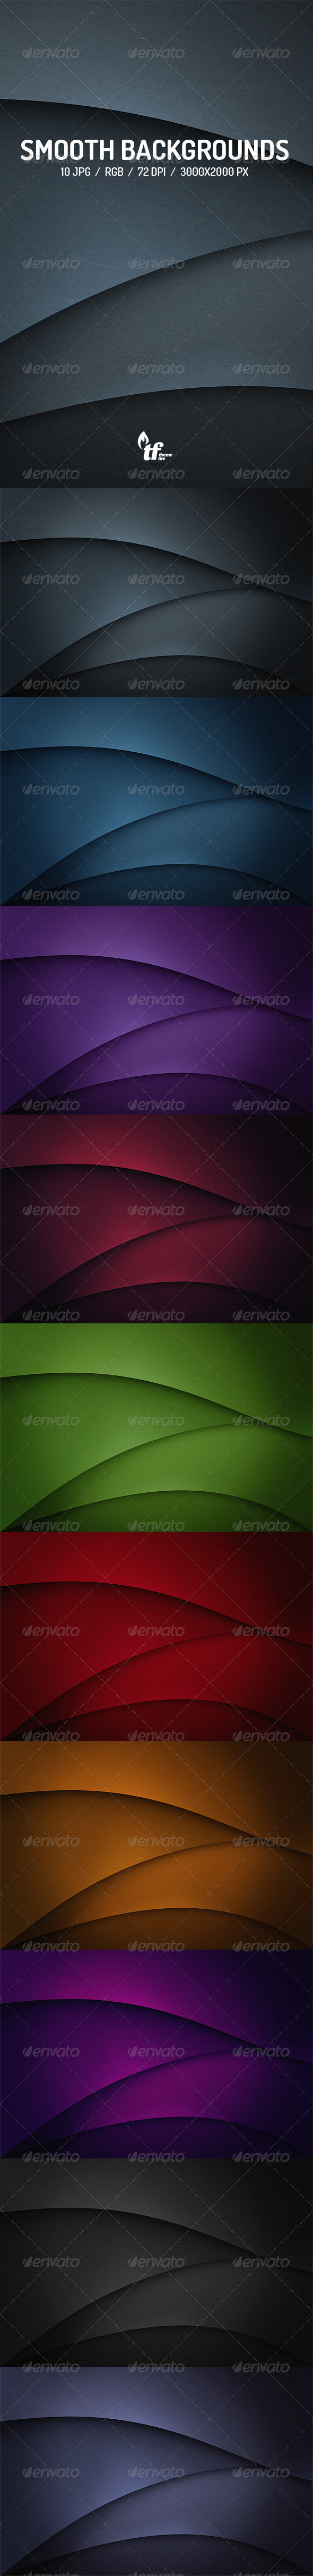 GraphicRiver Flat Smooth Flow Backgrounds 7763856